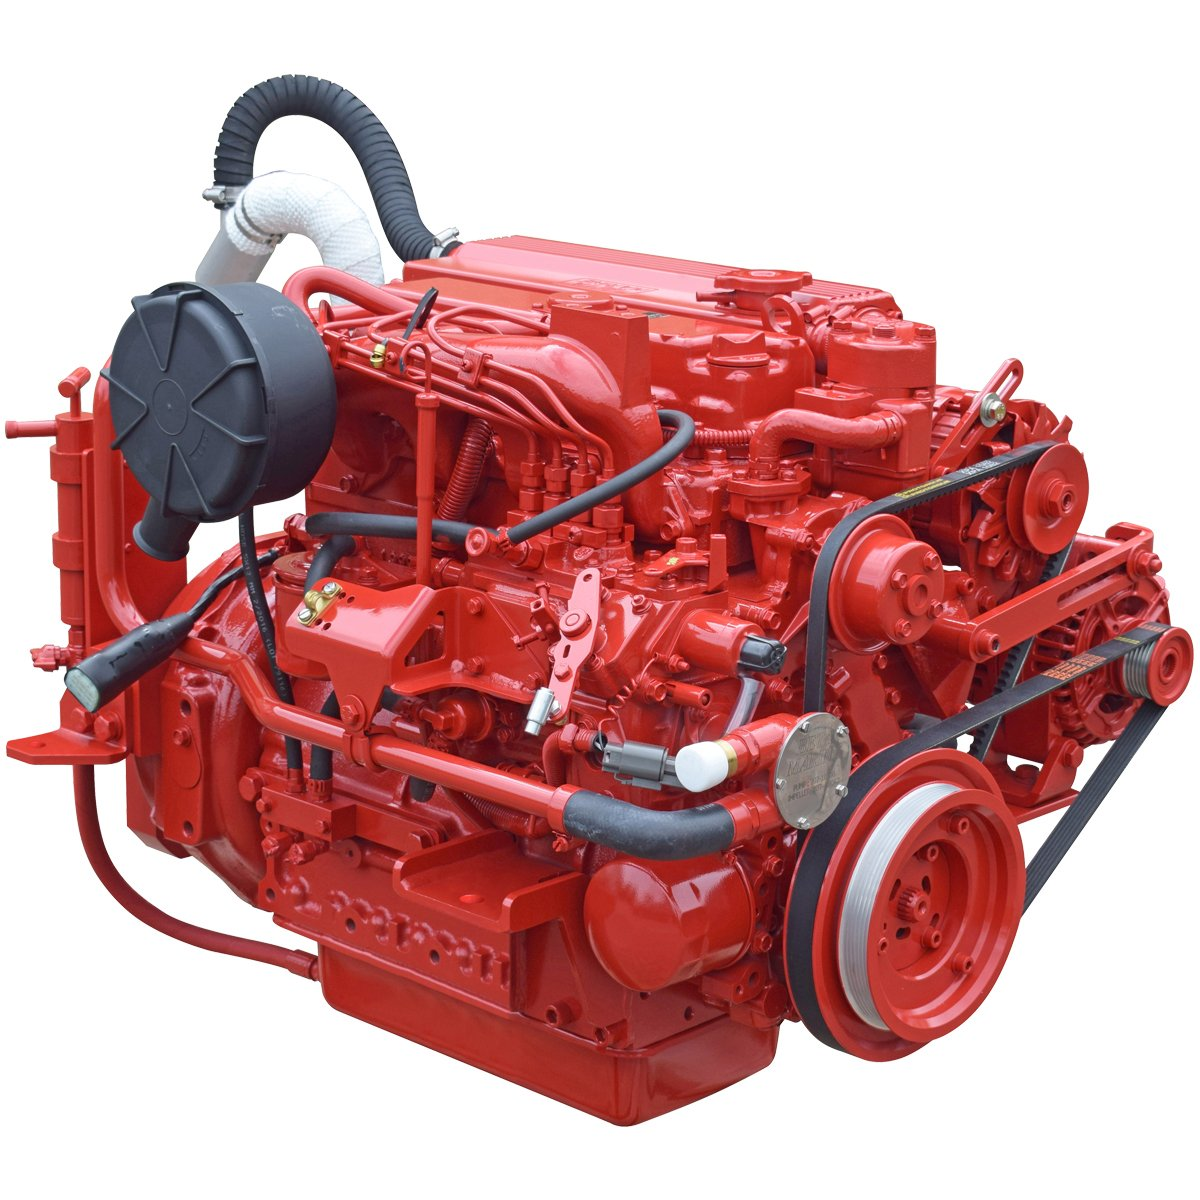 Beta Marine USA - marine diesel saildrive engines - Beta 50SD heat exchanger saildrive engine